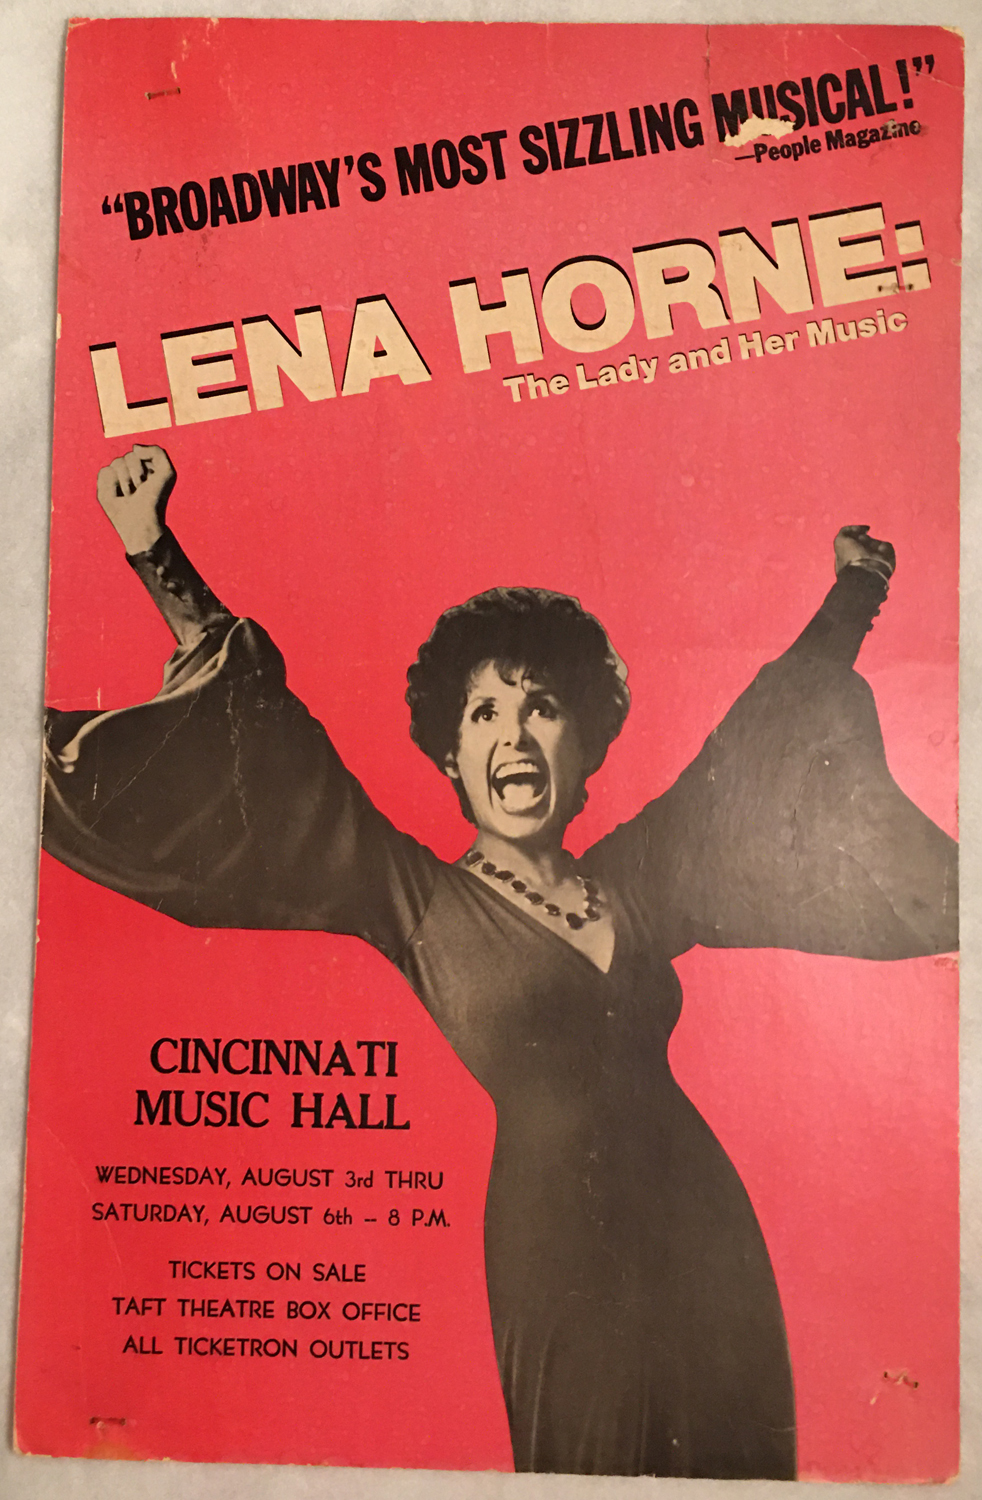 Image for Lena Horne: The Lady and Her Music, Poster, Cincinnati Music Hall